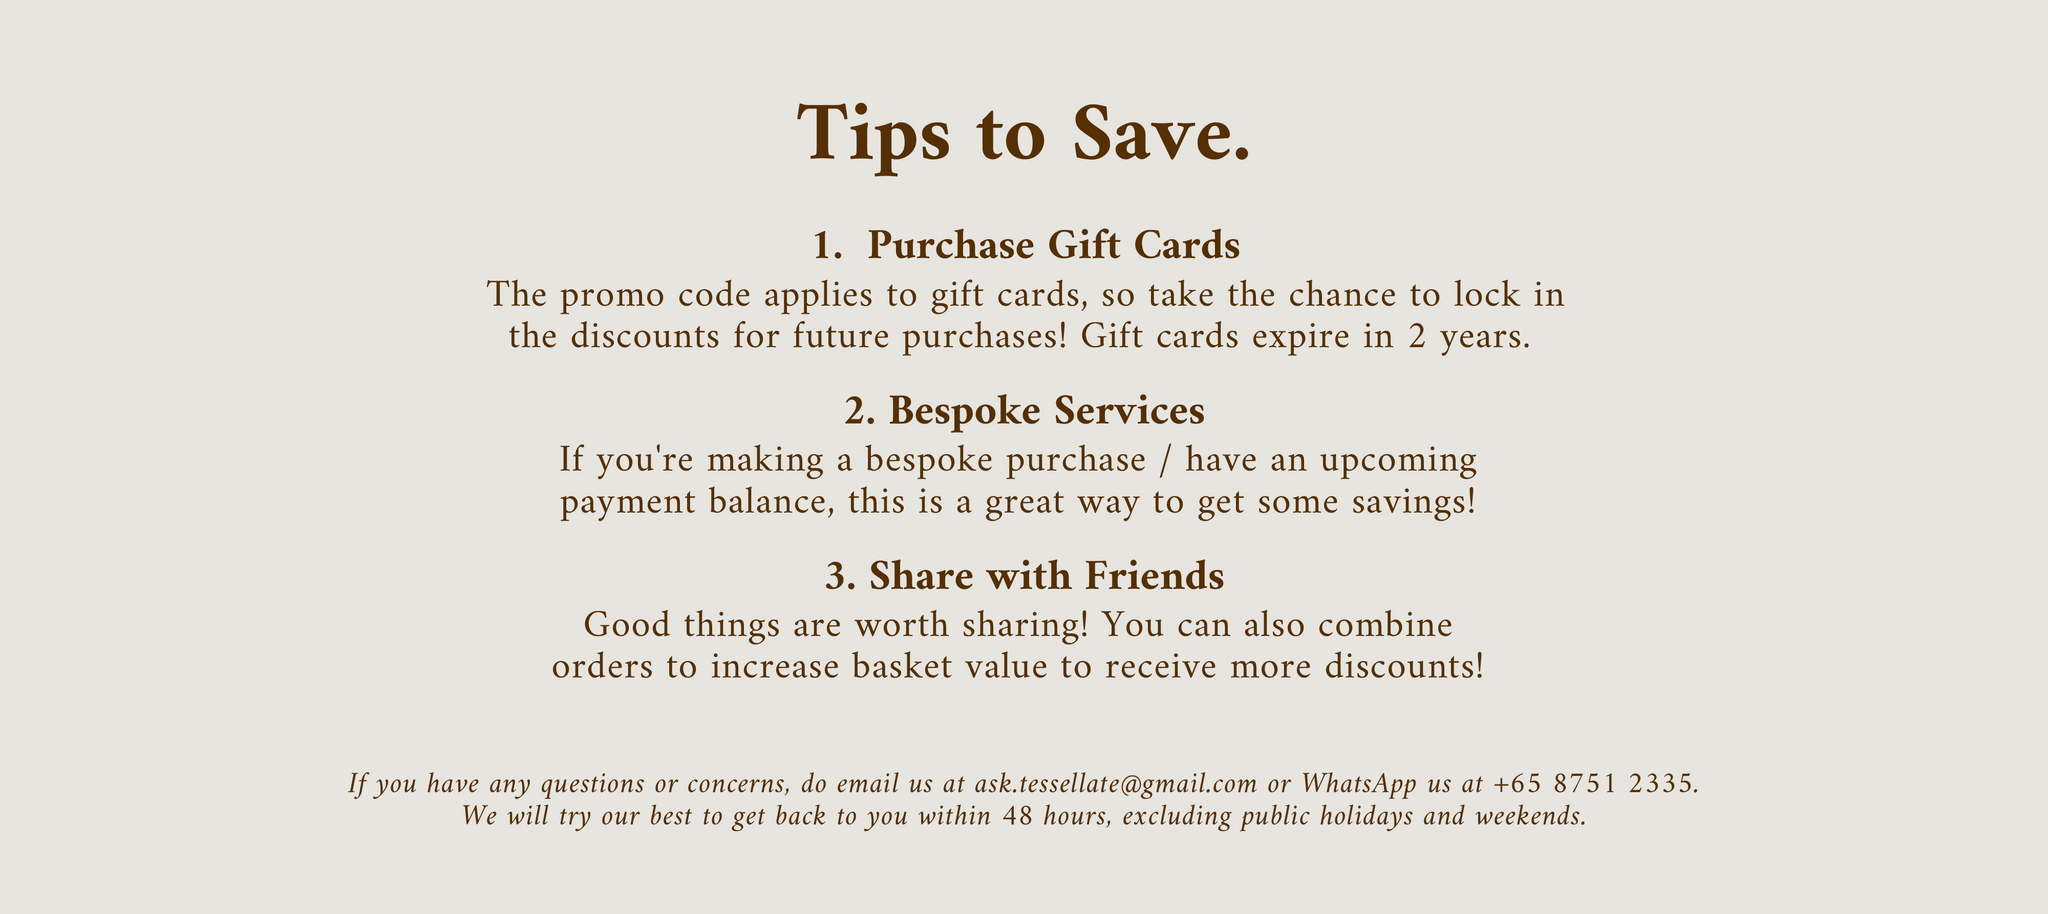 Tips to save.